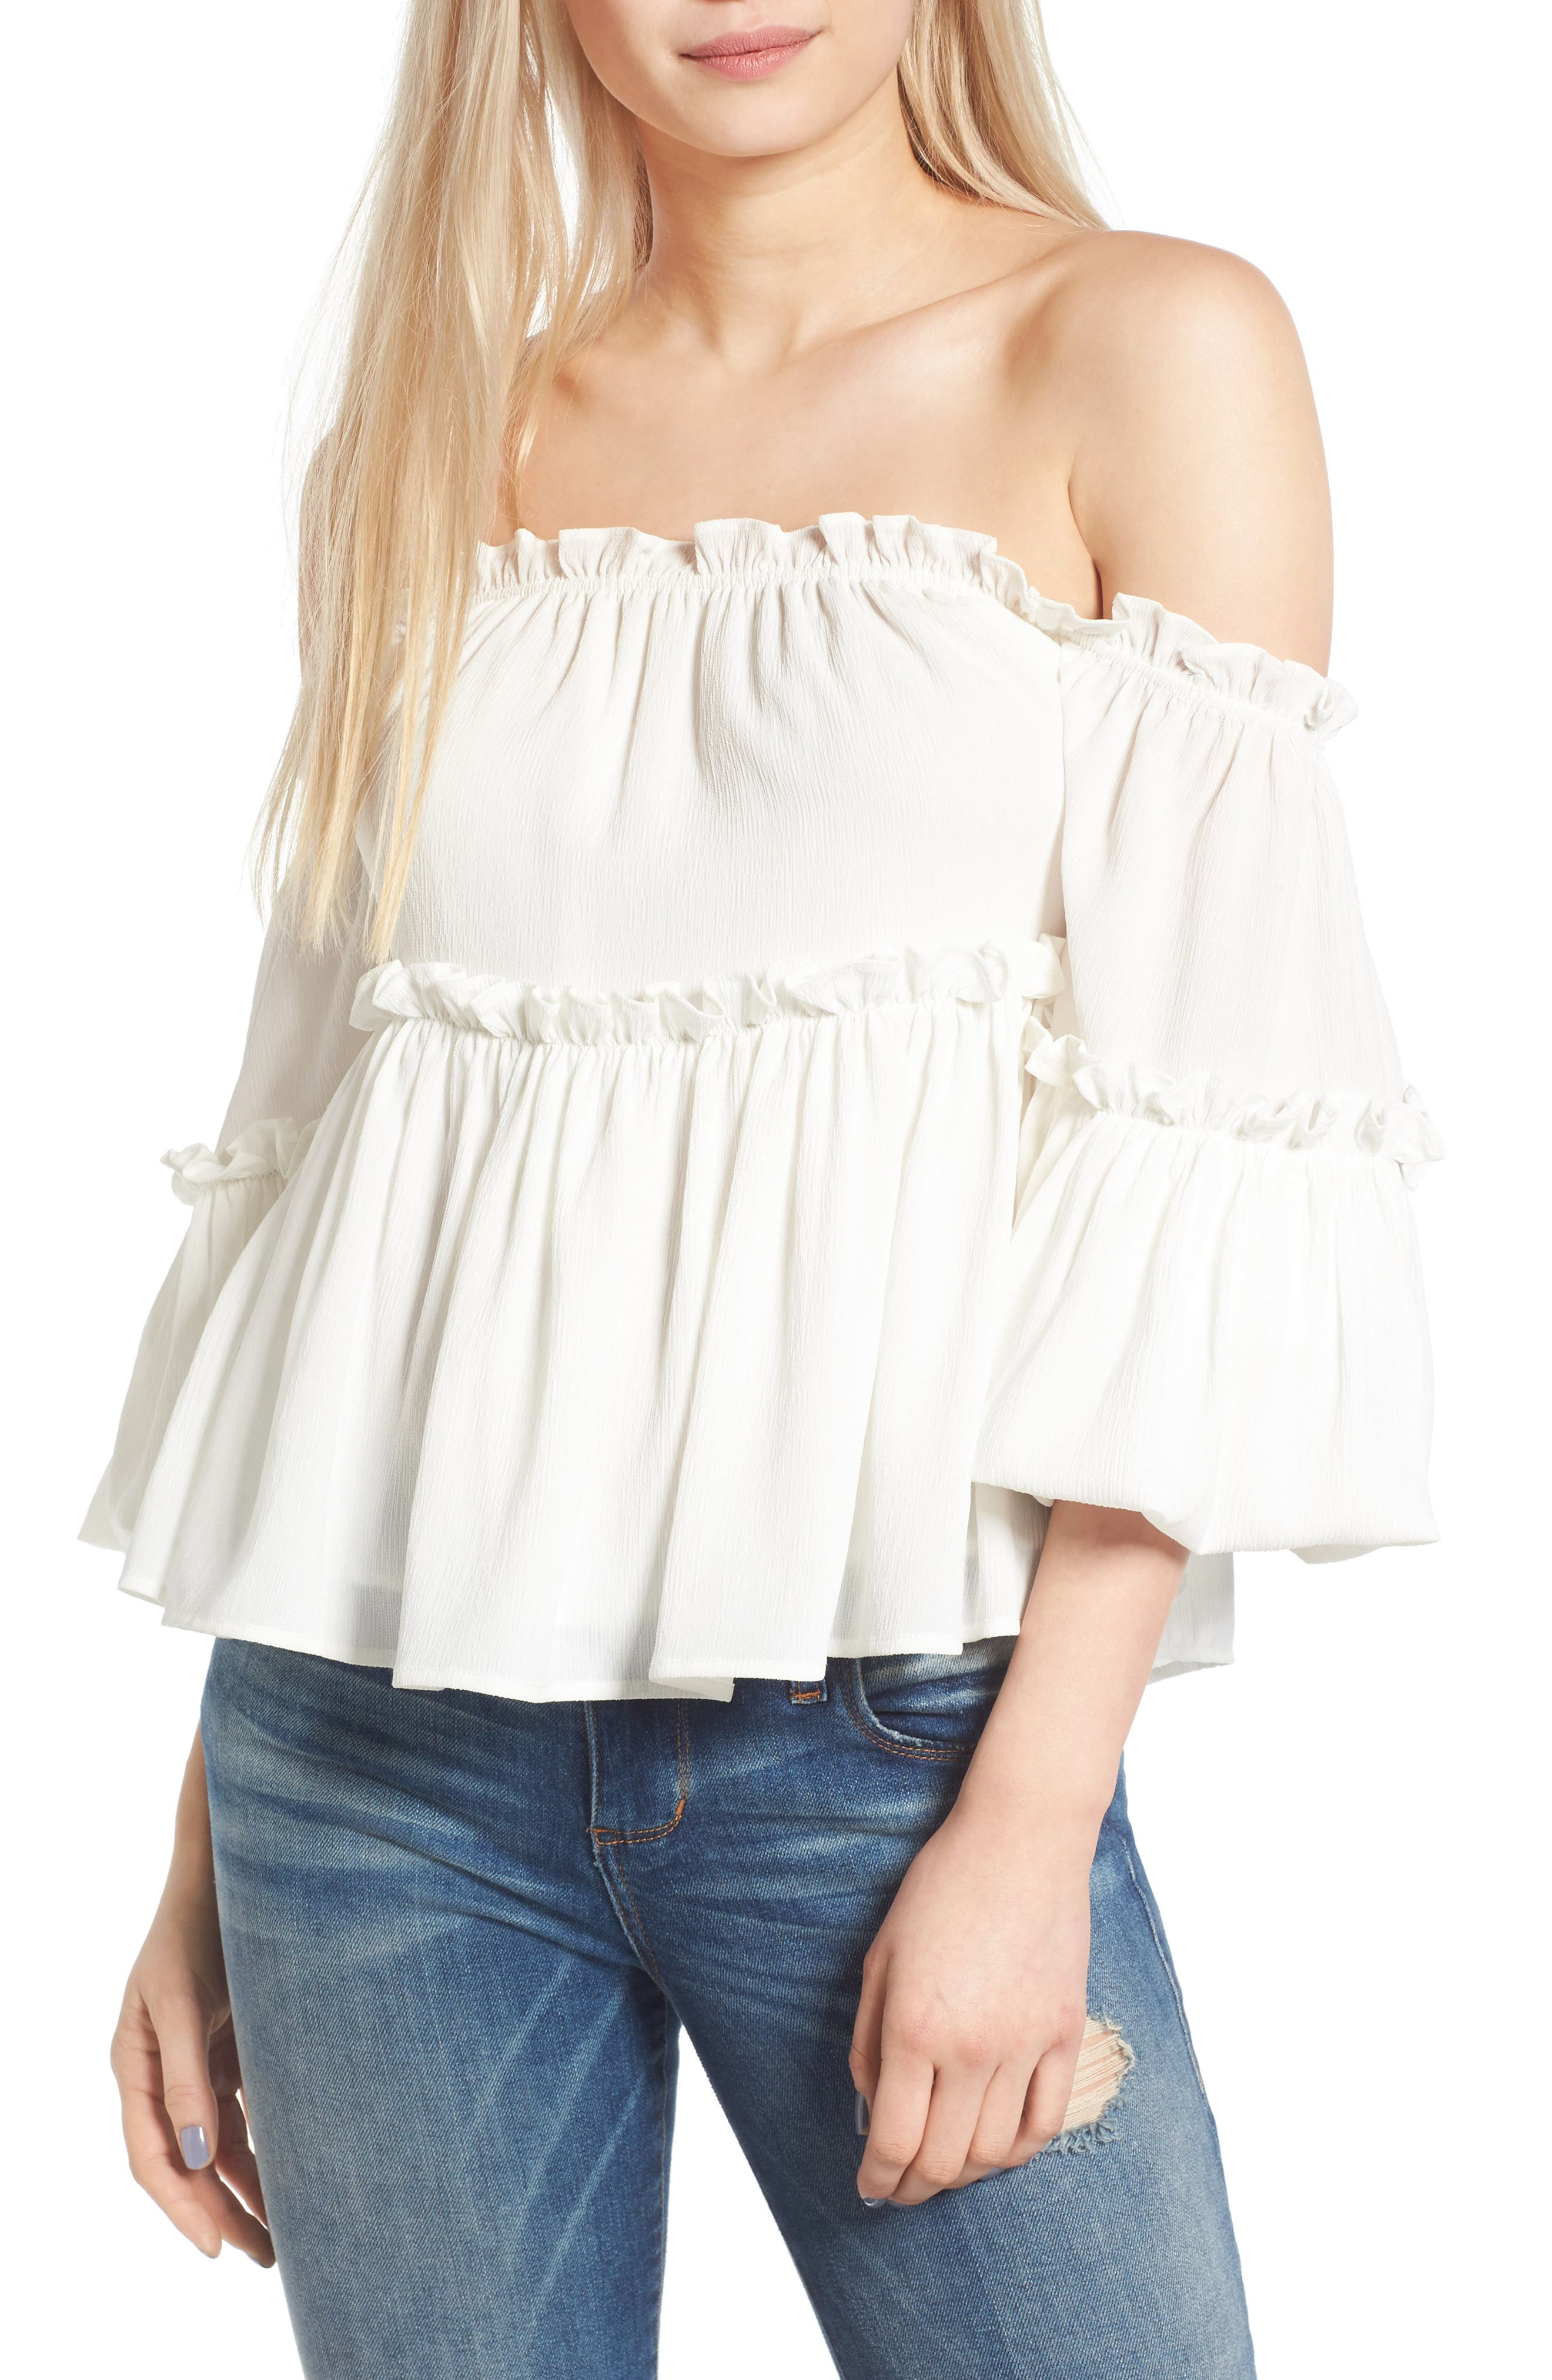 Alternate Image 1 Selected - J.O.A. Ruffle Off the Shoulder Top